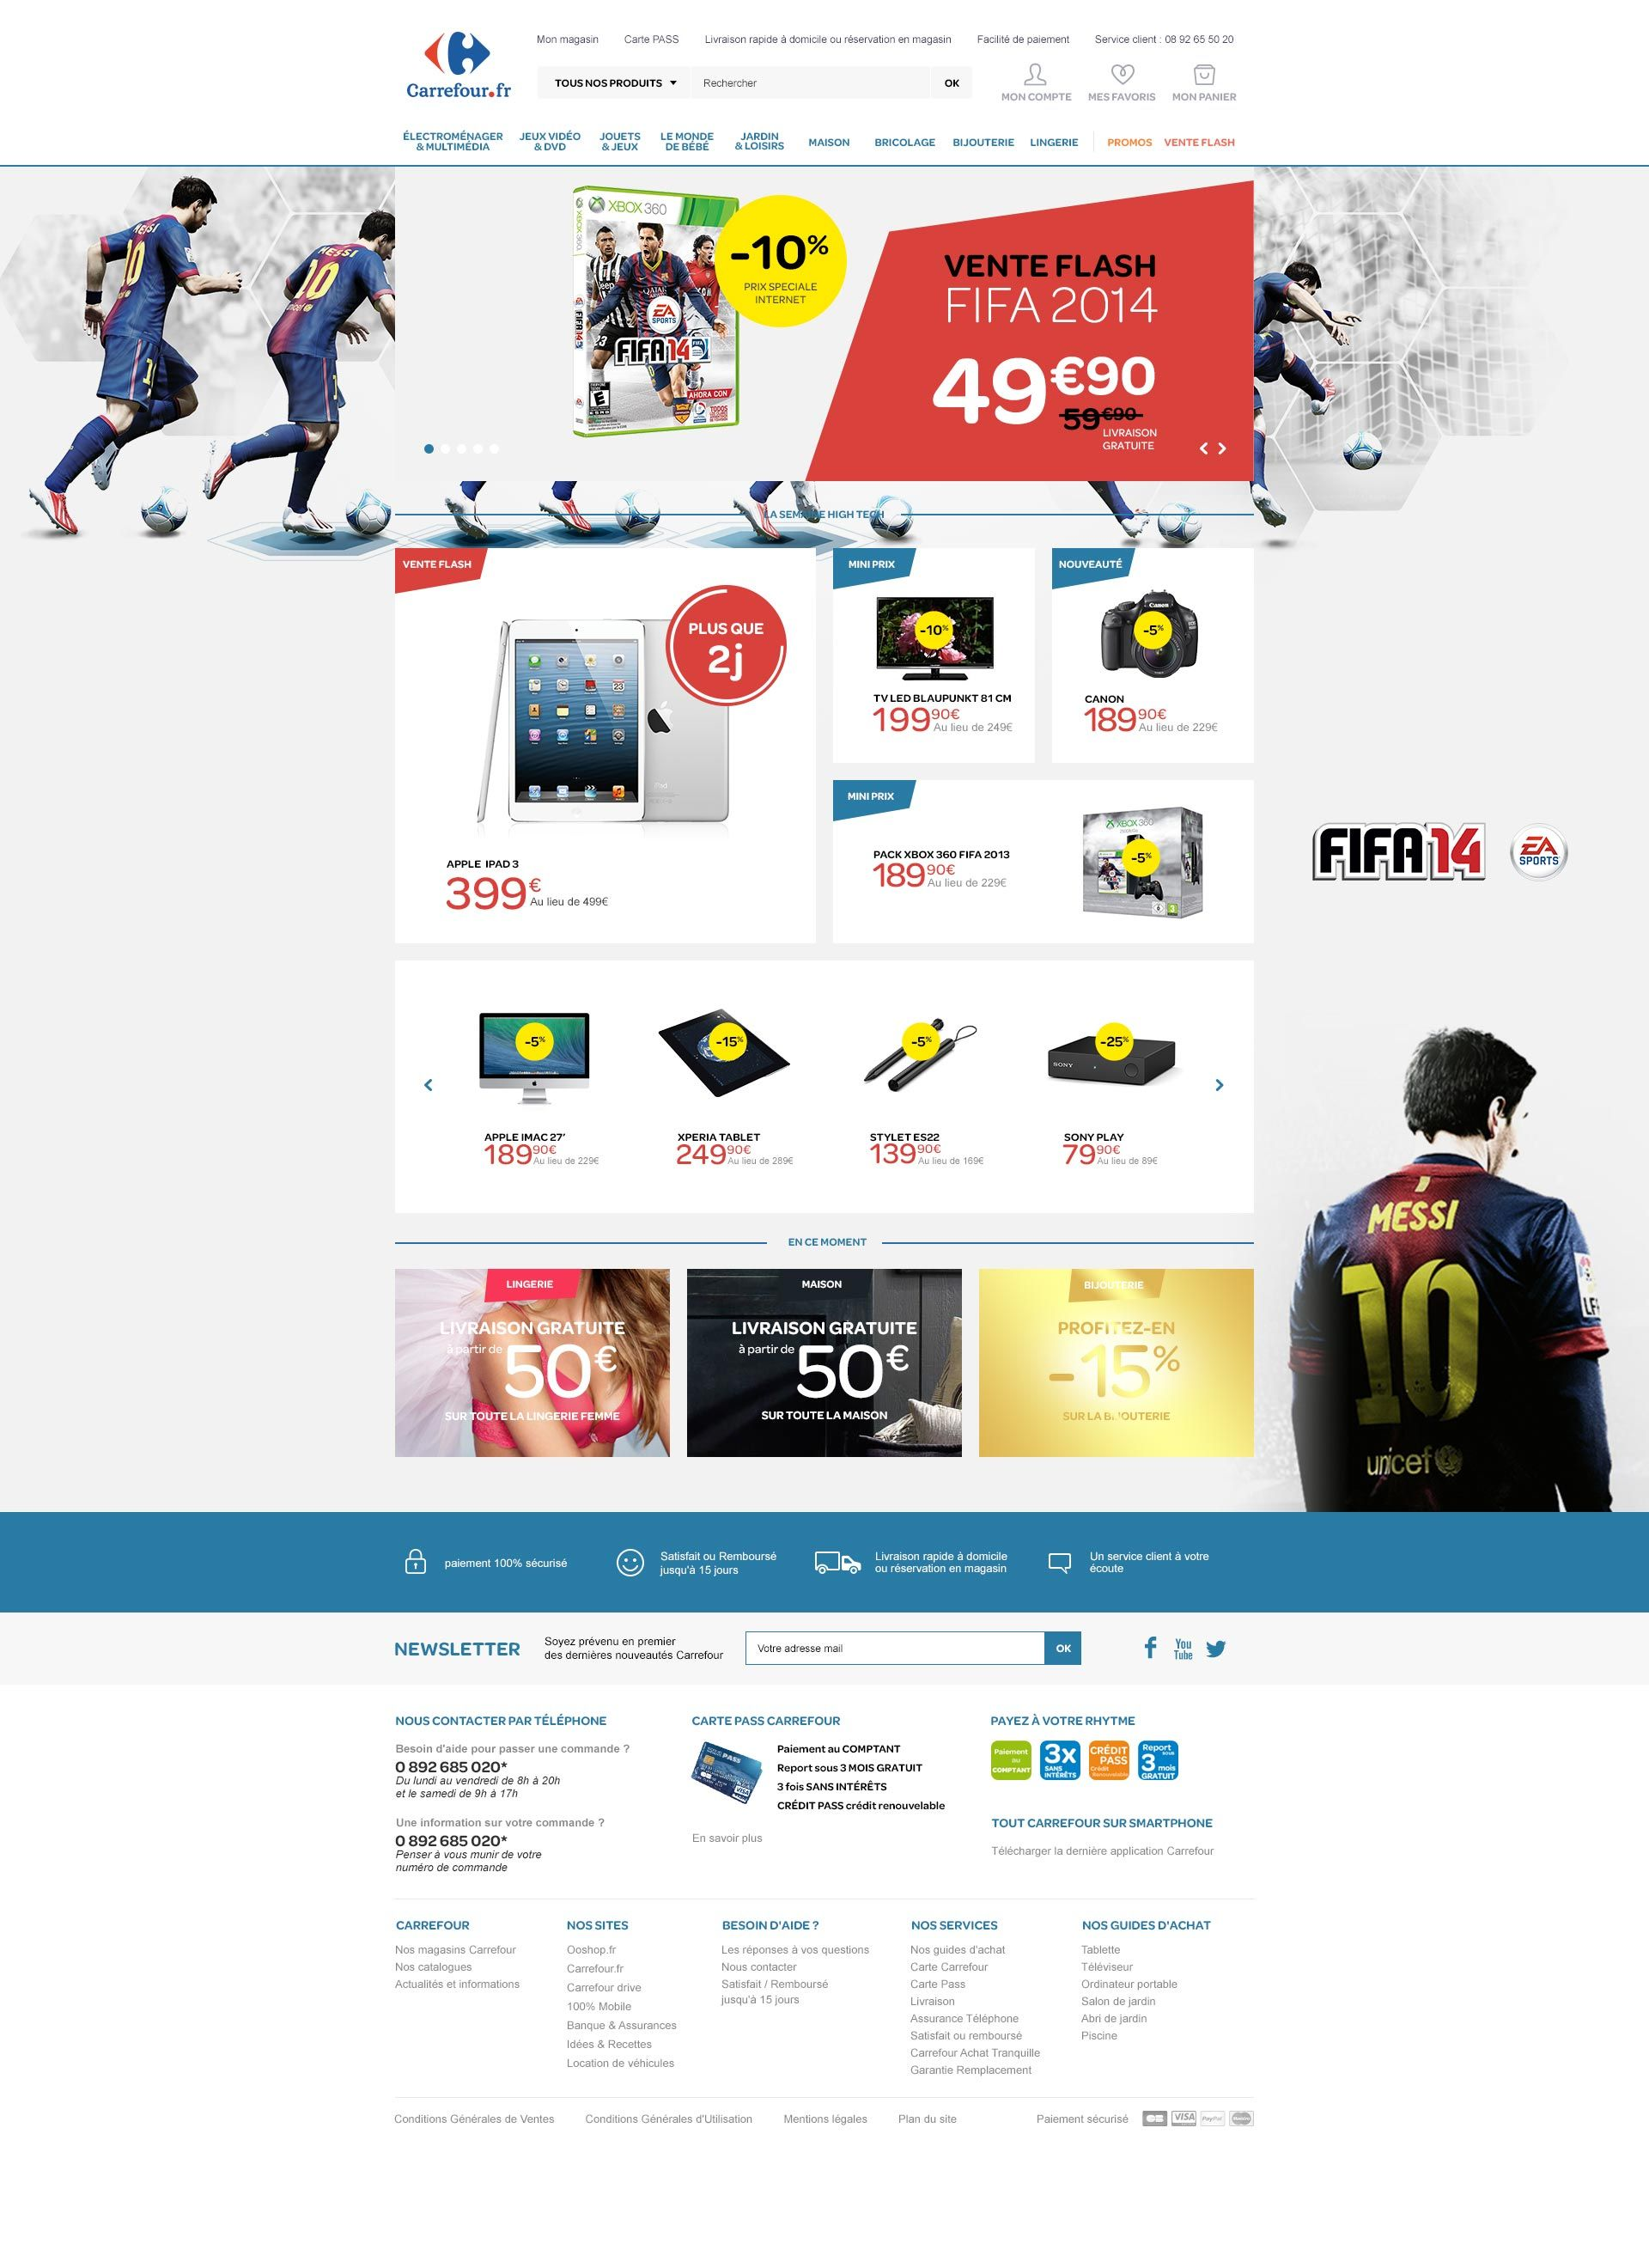 Libros Carrefour Carrefour Website Design Book Pinterest Book Design Website